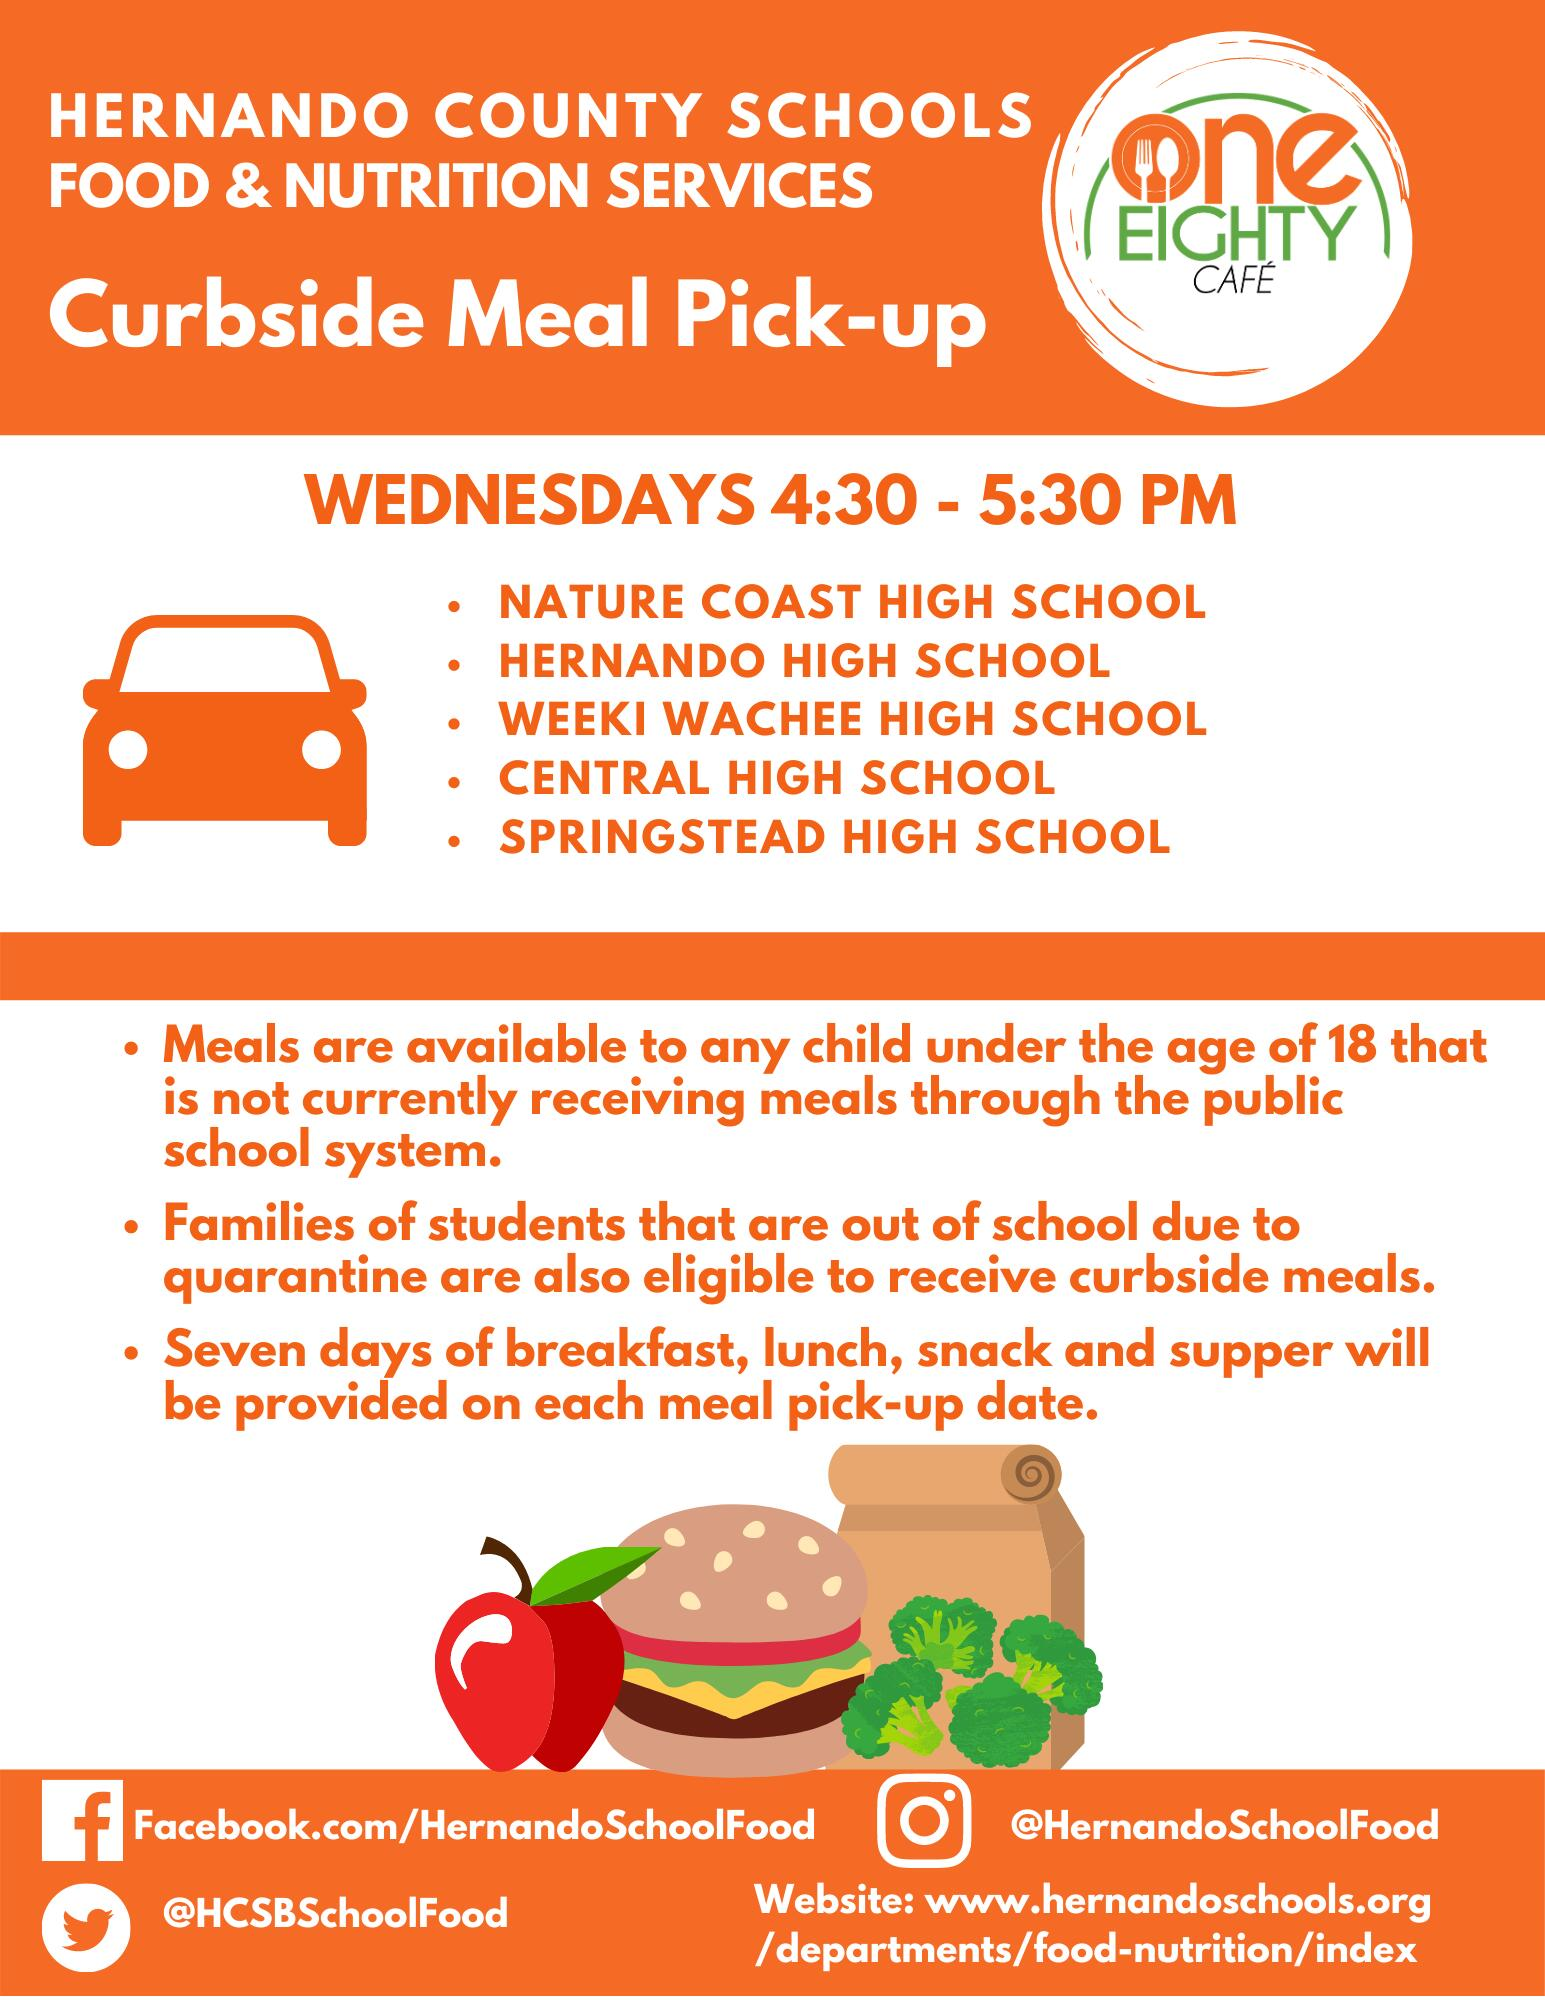 Curbside meal pick-up flyer